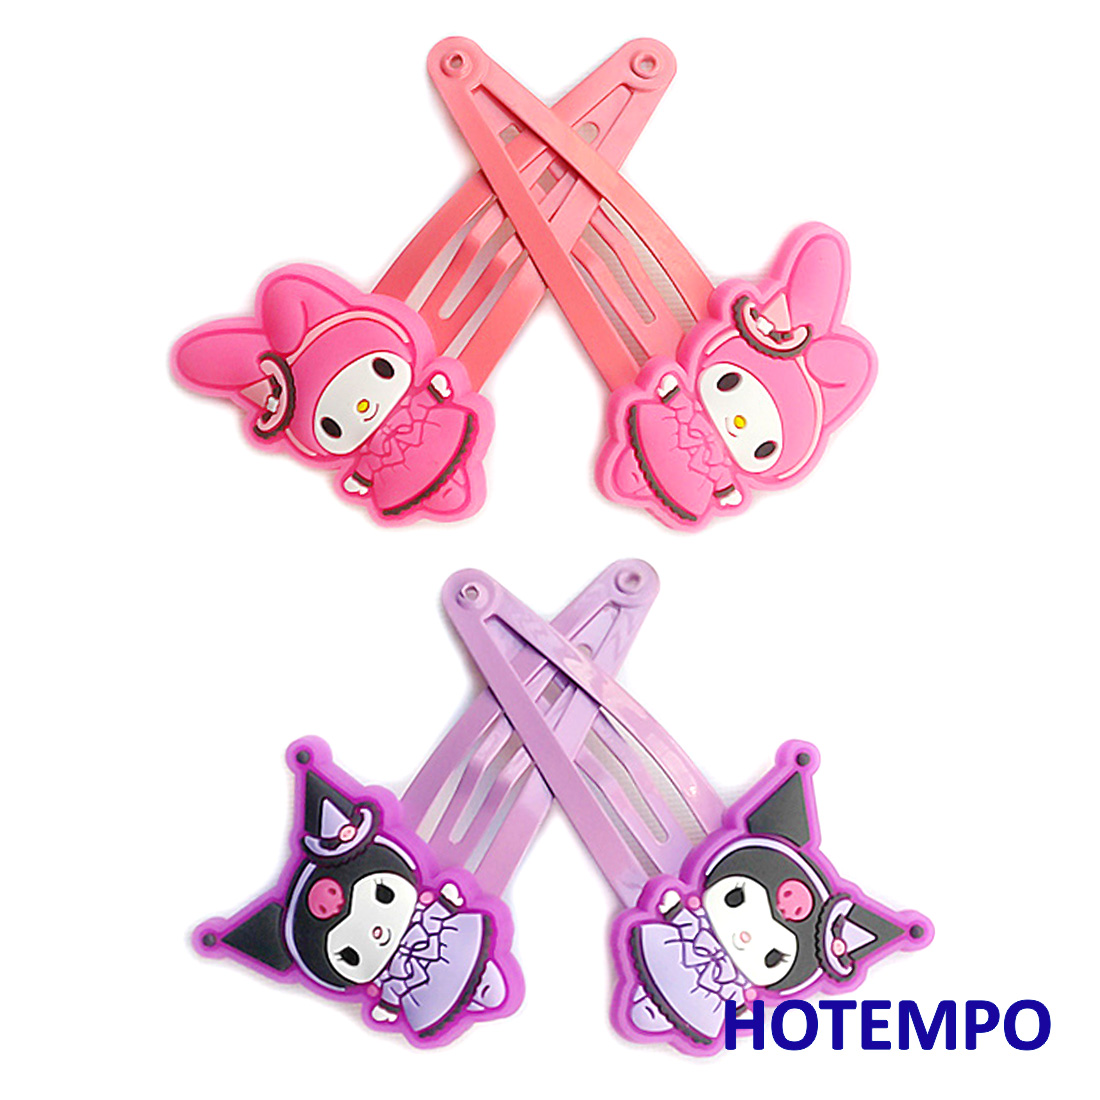 japan-cute-cartoon-gothic-lolita-kuromi-melody-girls-baby-kawaii-hair-accessories-hairpins-hairclip-elastic-hairbands-for-gift